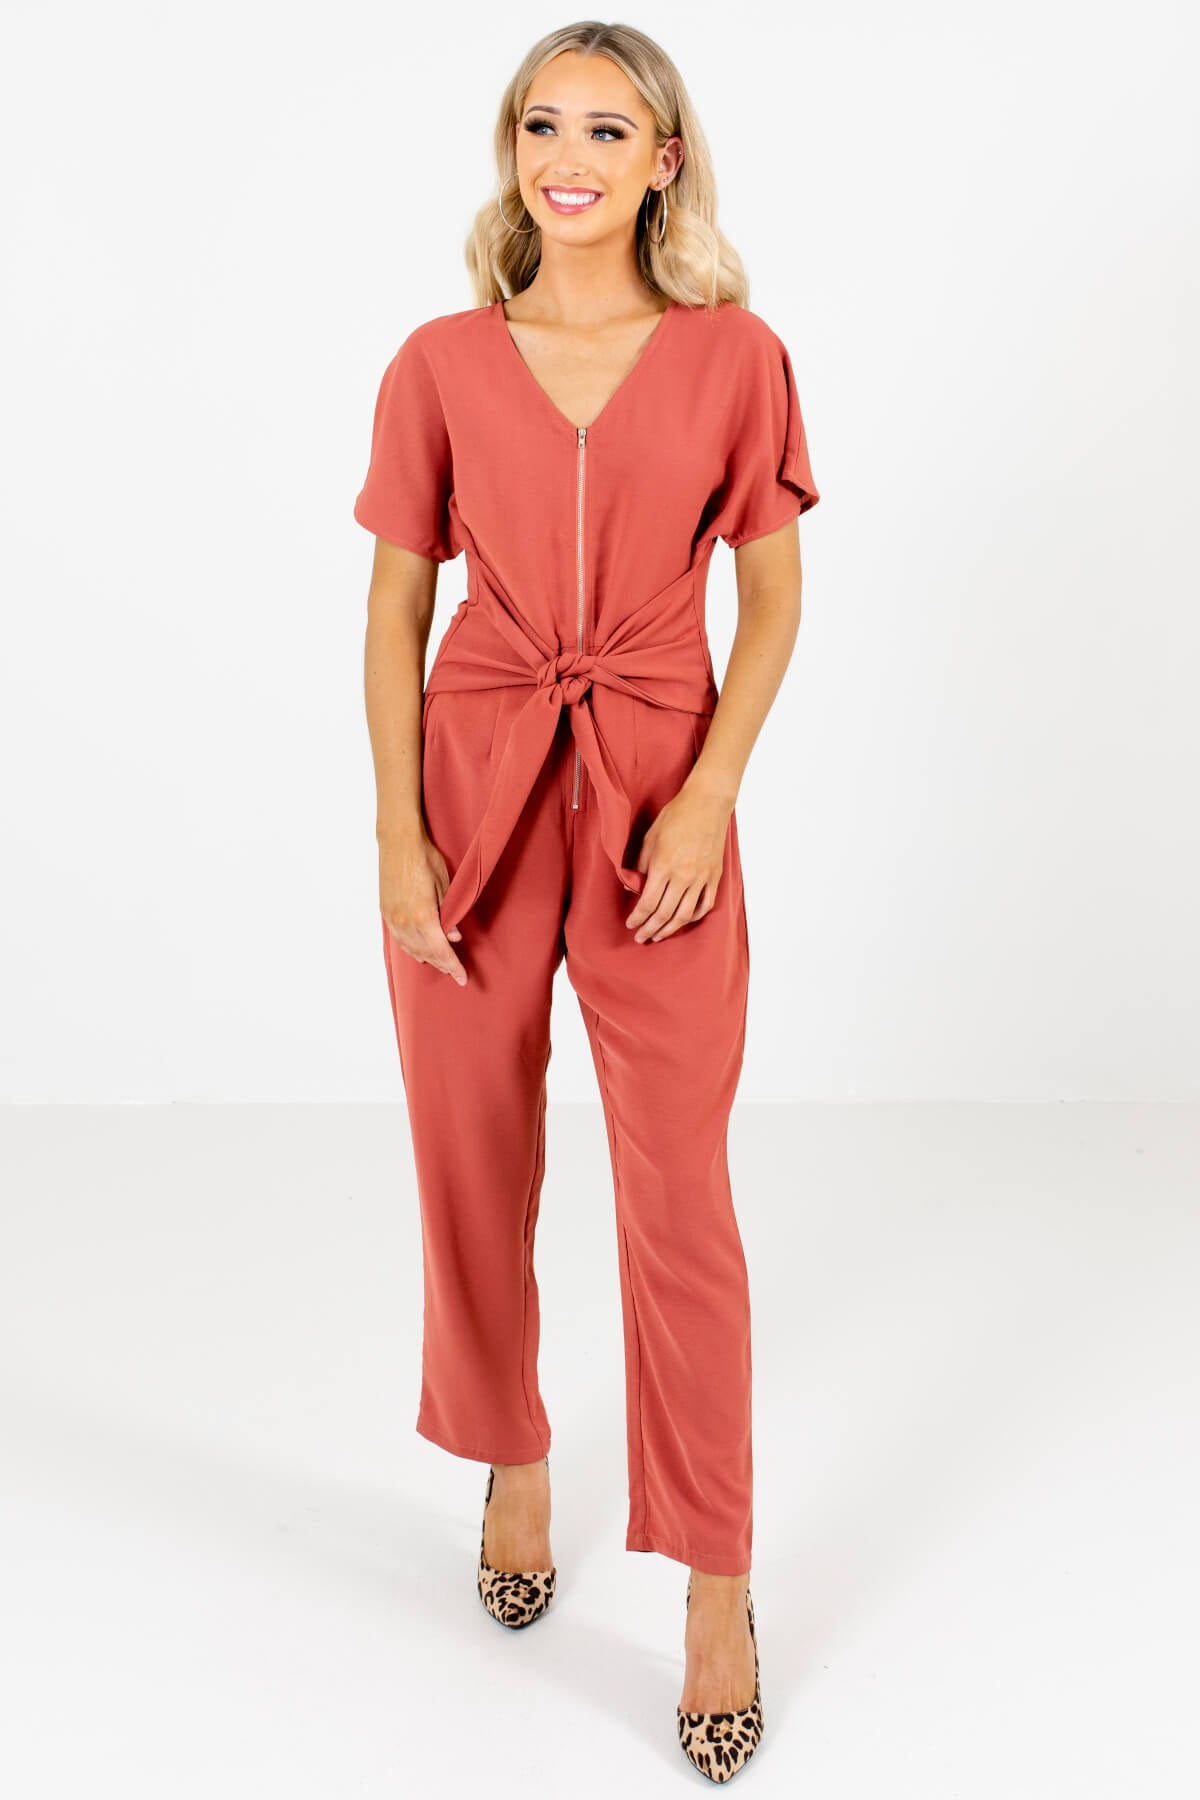 Dark Coral Zip-Up Bodice Boutique Jumpsuits for Women